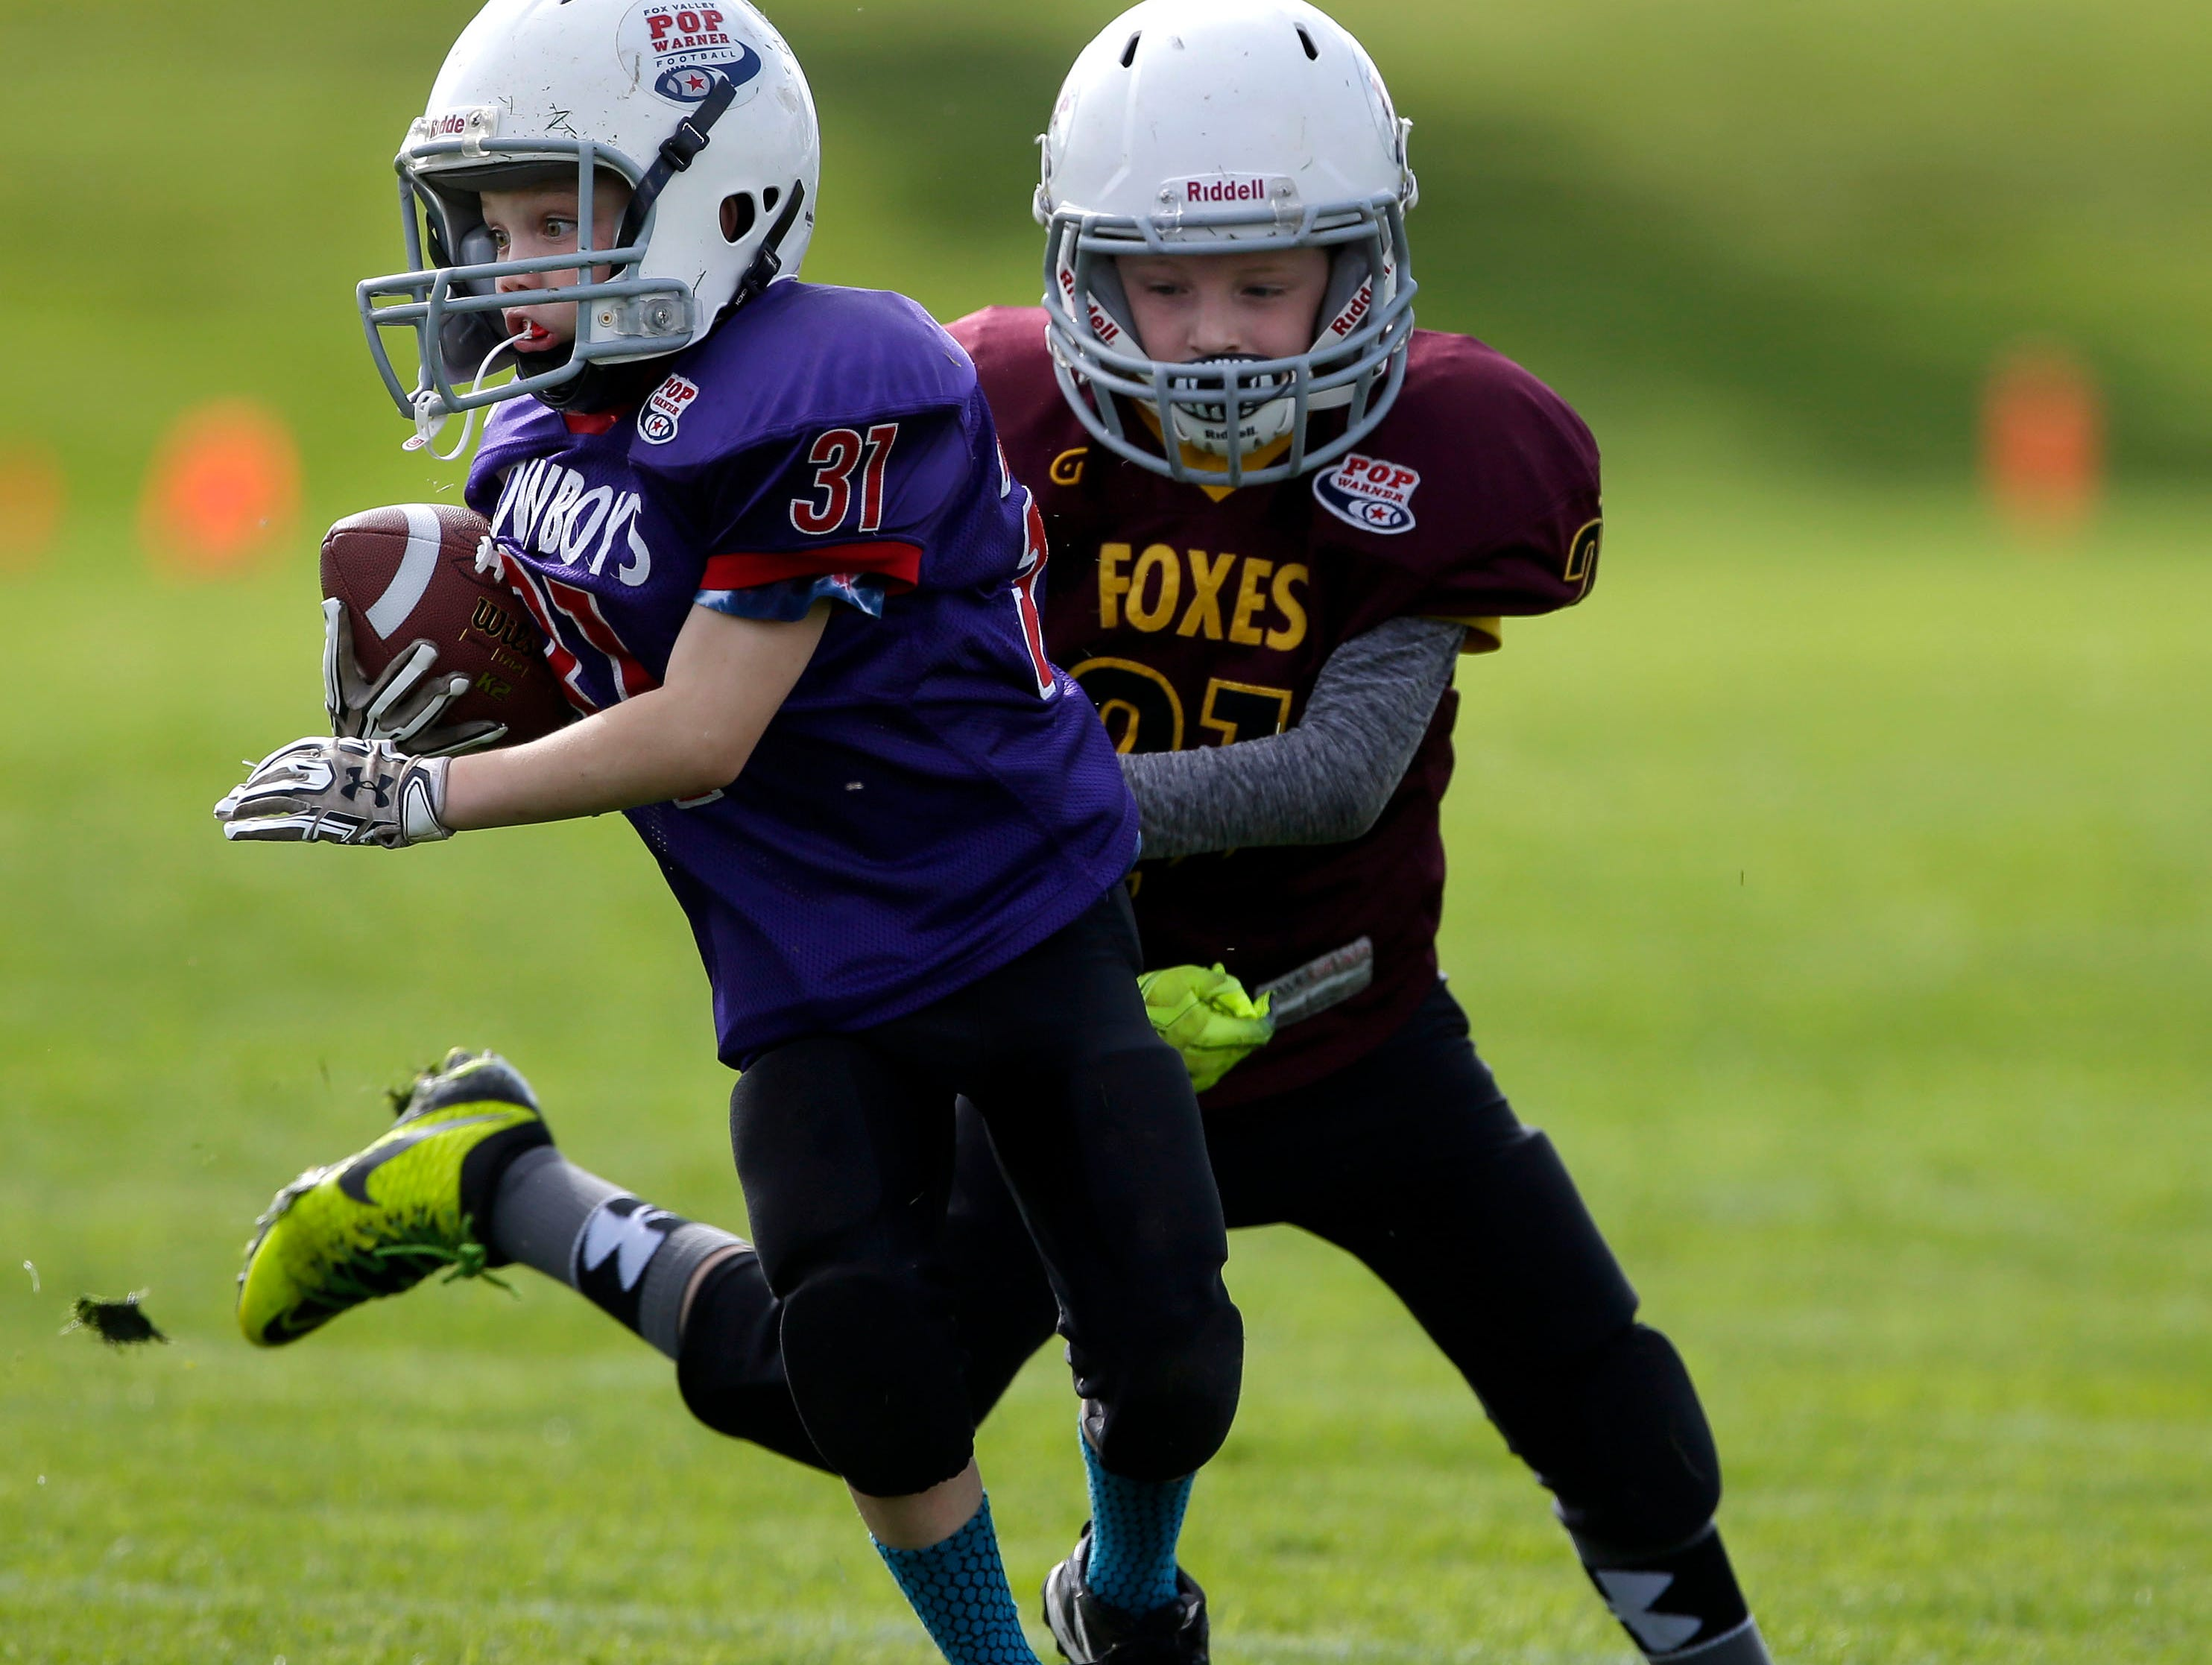 Anthony Reischl of the Cowboys works to get away from Evan Schmidt of the Foxes as Fox Valley Pop Warner Football opens the season Saturday, September 8, 2018, at Plamann Park in Grand Chute, Wis.Ron Page/USA TODAY NETWORK-Wisconsin